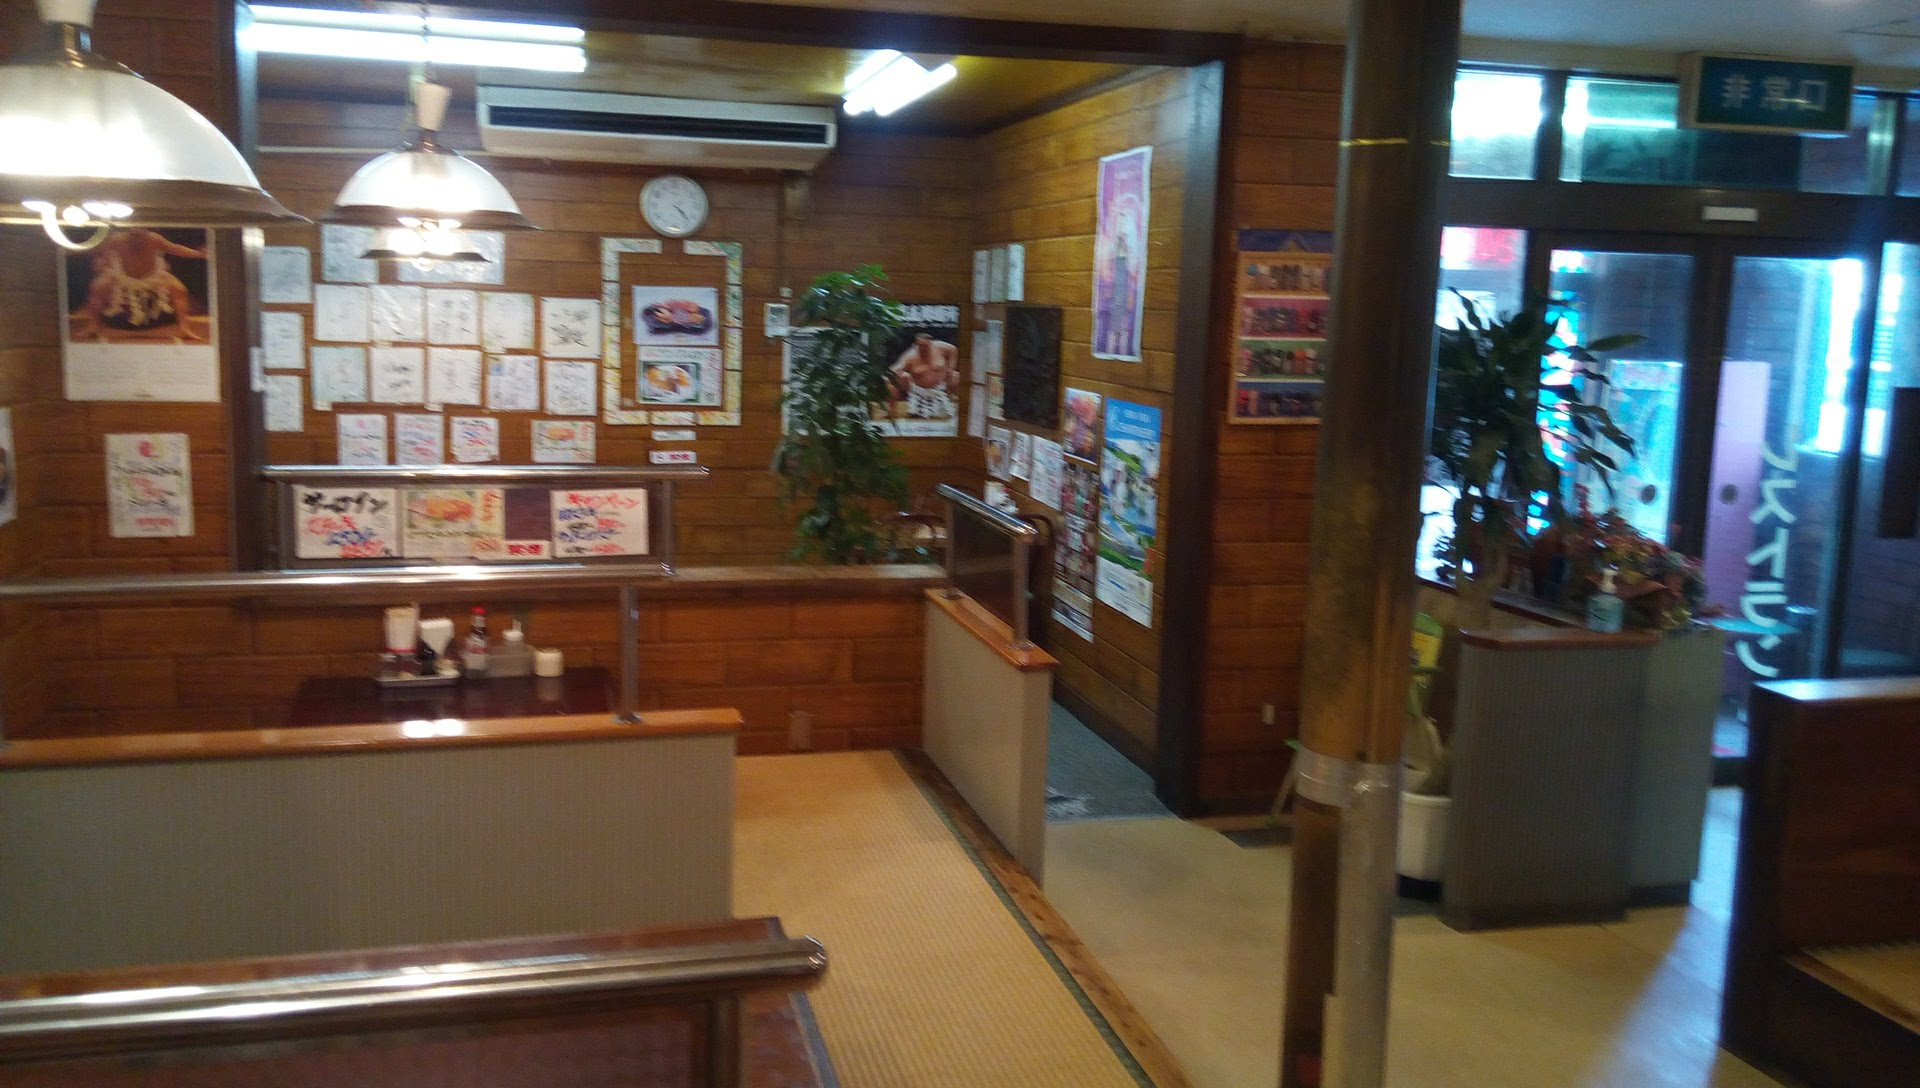 The restaurant Kuni inside 1